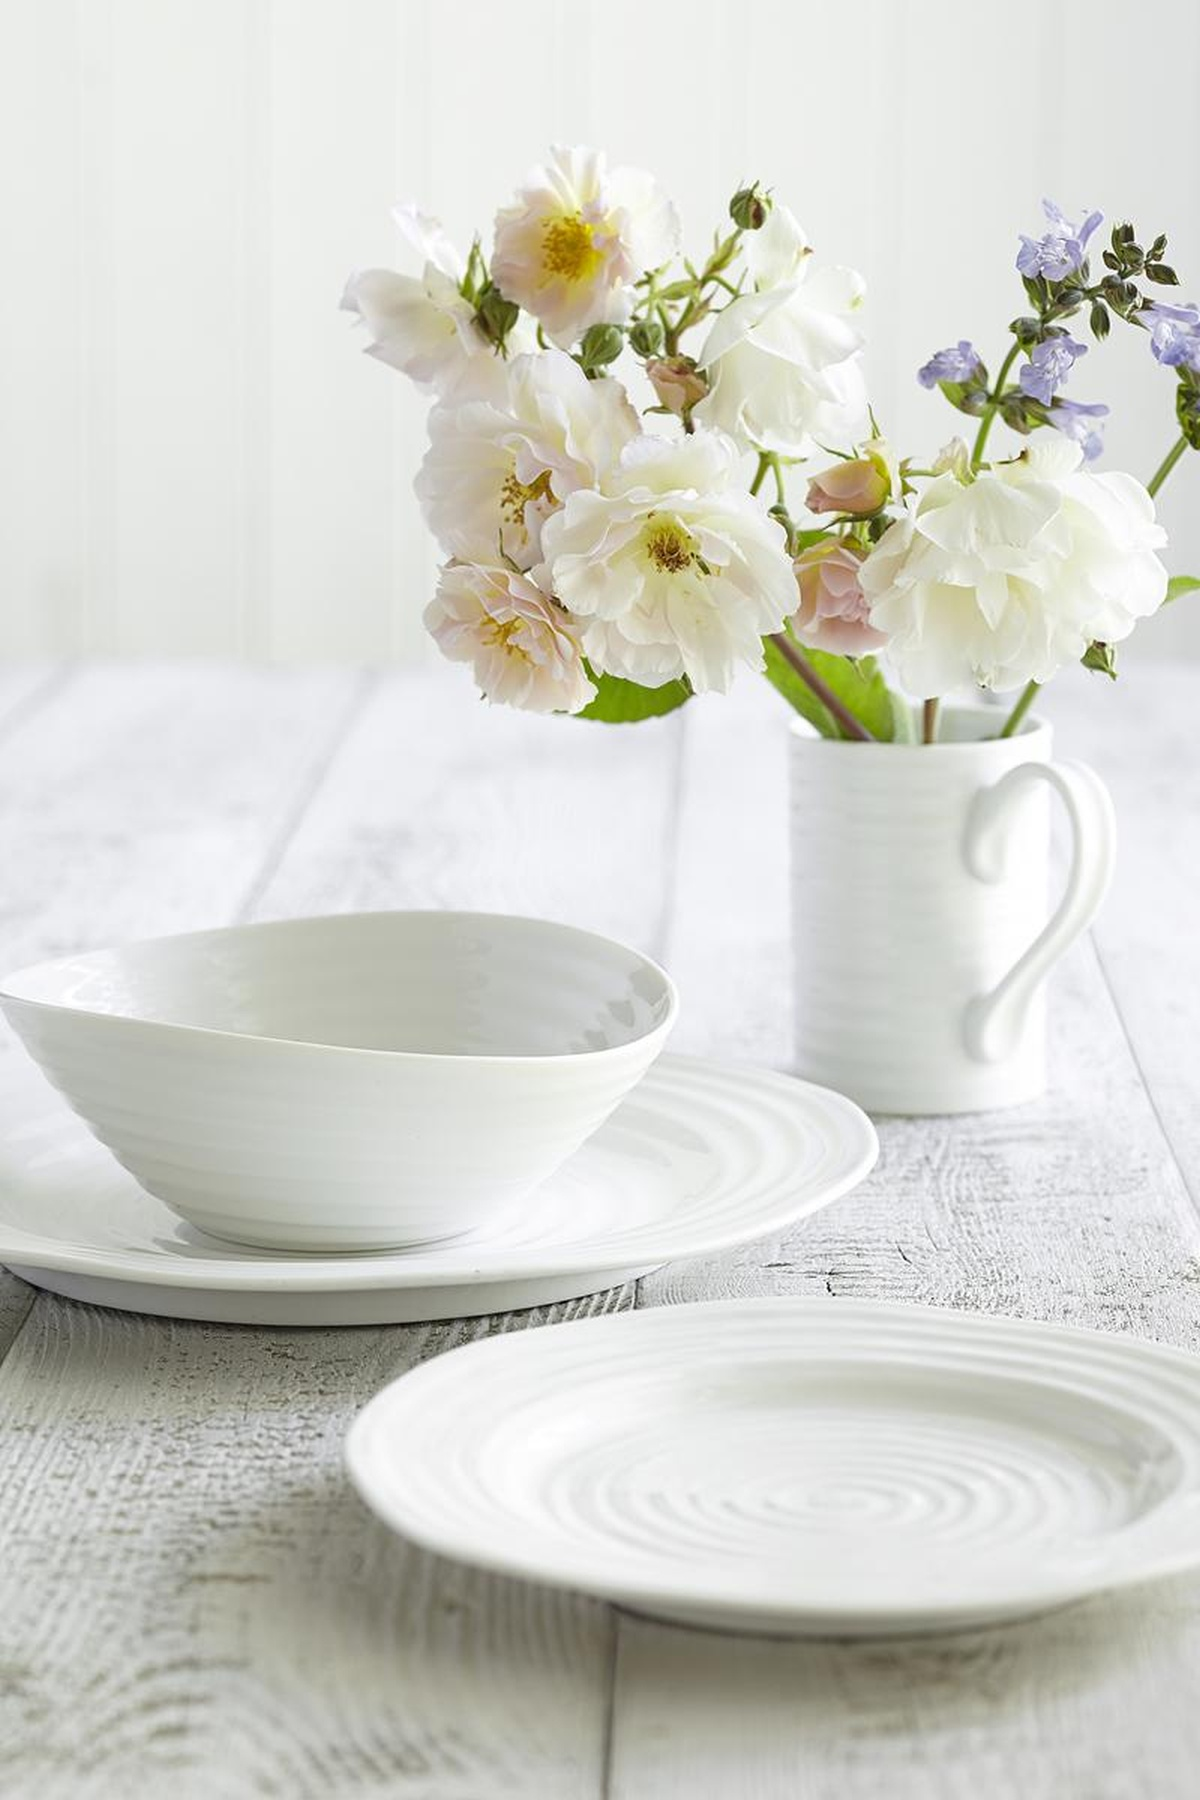 SOPHIE CONRAN BREAKFAST WITH FLOWERS PORTMEIRION